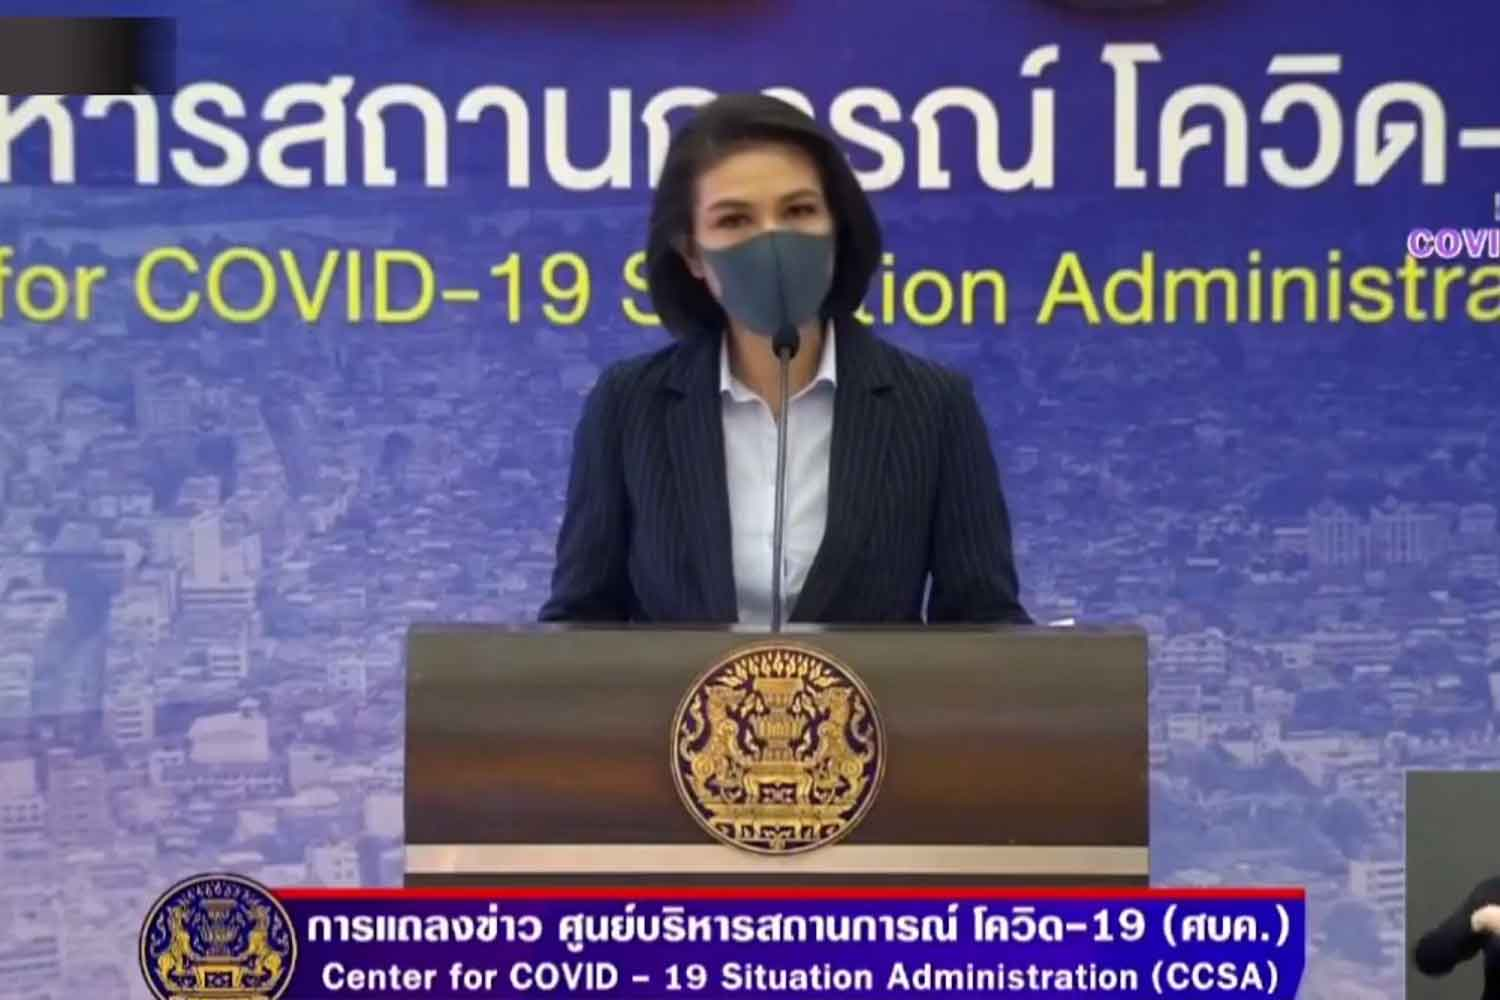 Apisamai Srirangson, assistant spokeswoman for the Centre for Covid-19 Situation Administration, details the closure orders for dark-red zones in a broadcast from   Government House in Bangkok on Wednesday. (Screenshot)